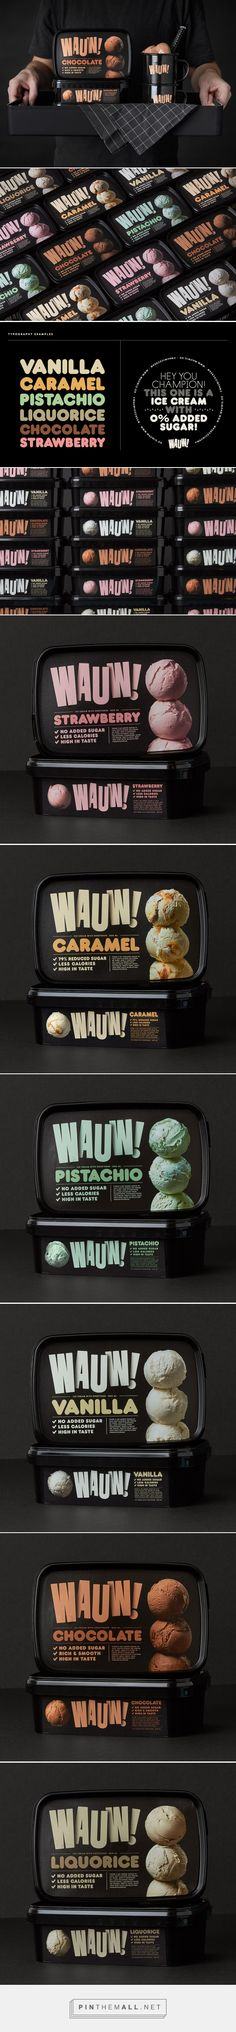 Wauw! Ice Cream by Snask. Source: Inspiration Grid. Pin curated by #SFields99 #packaging #design #inspiration #ideas #icecream #tub